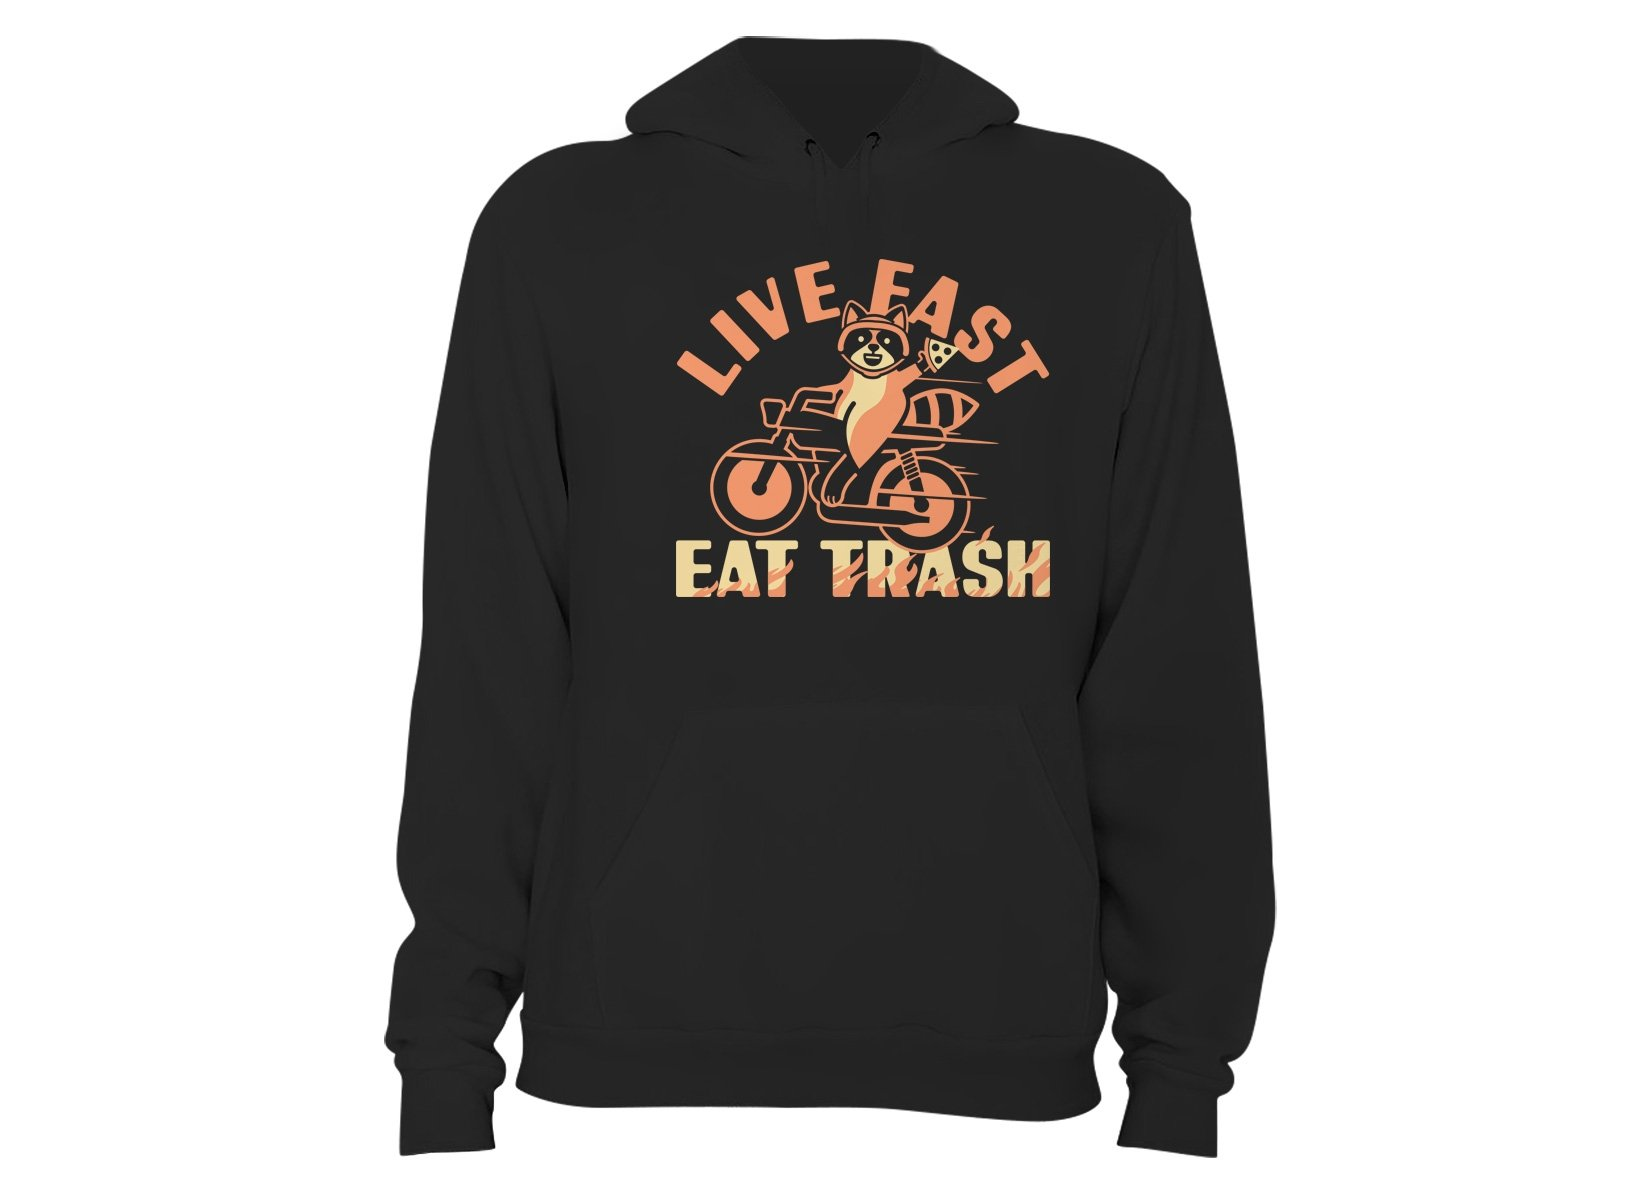 Live Fast Eat Trash on Hoodie